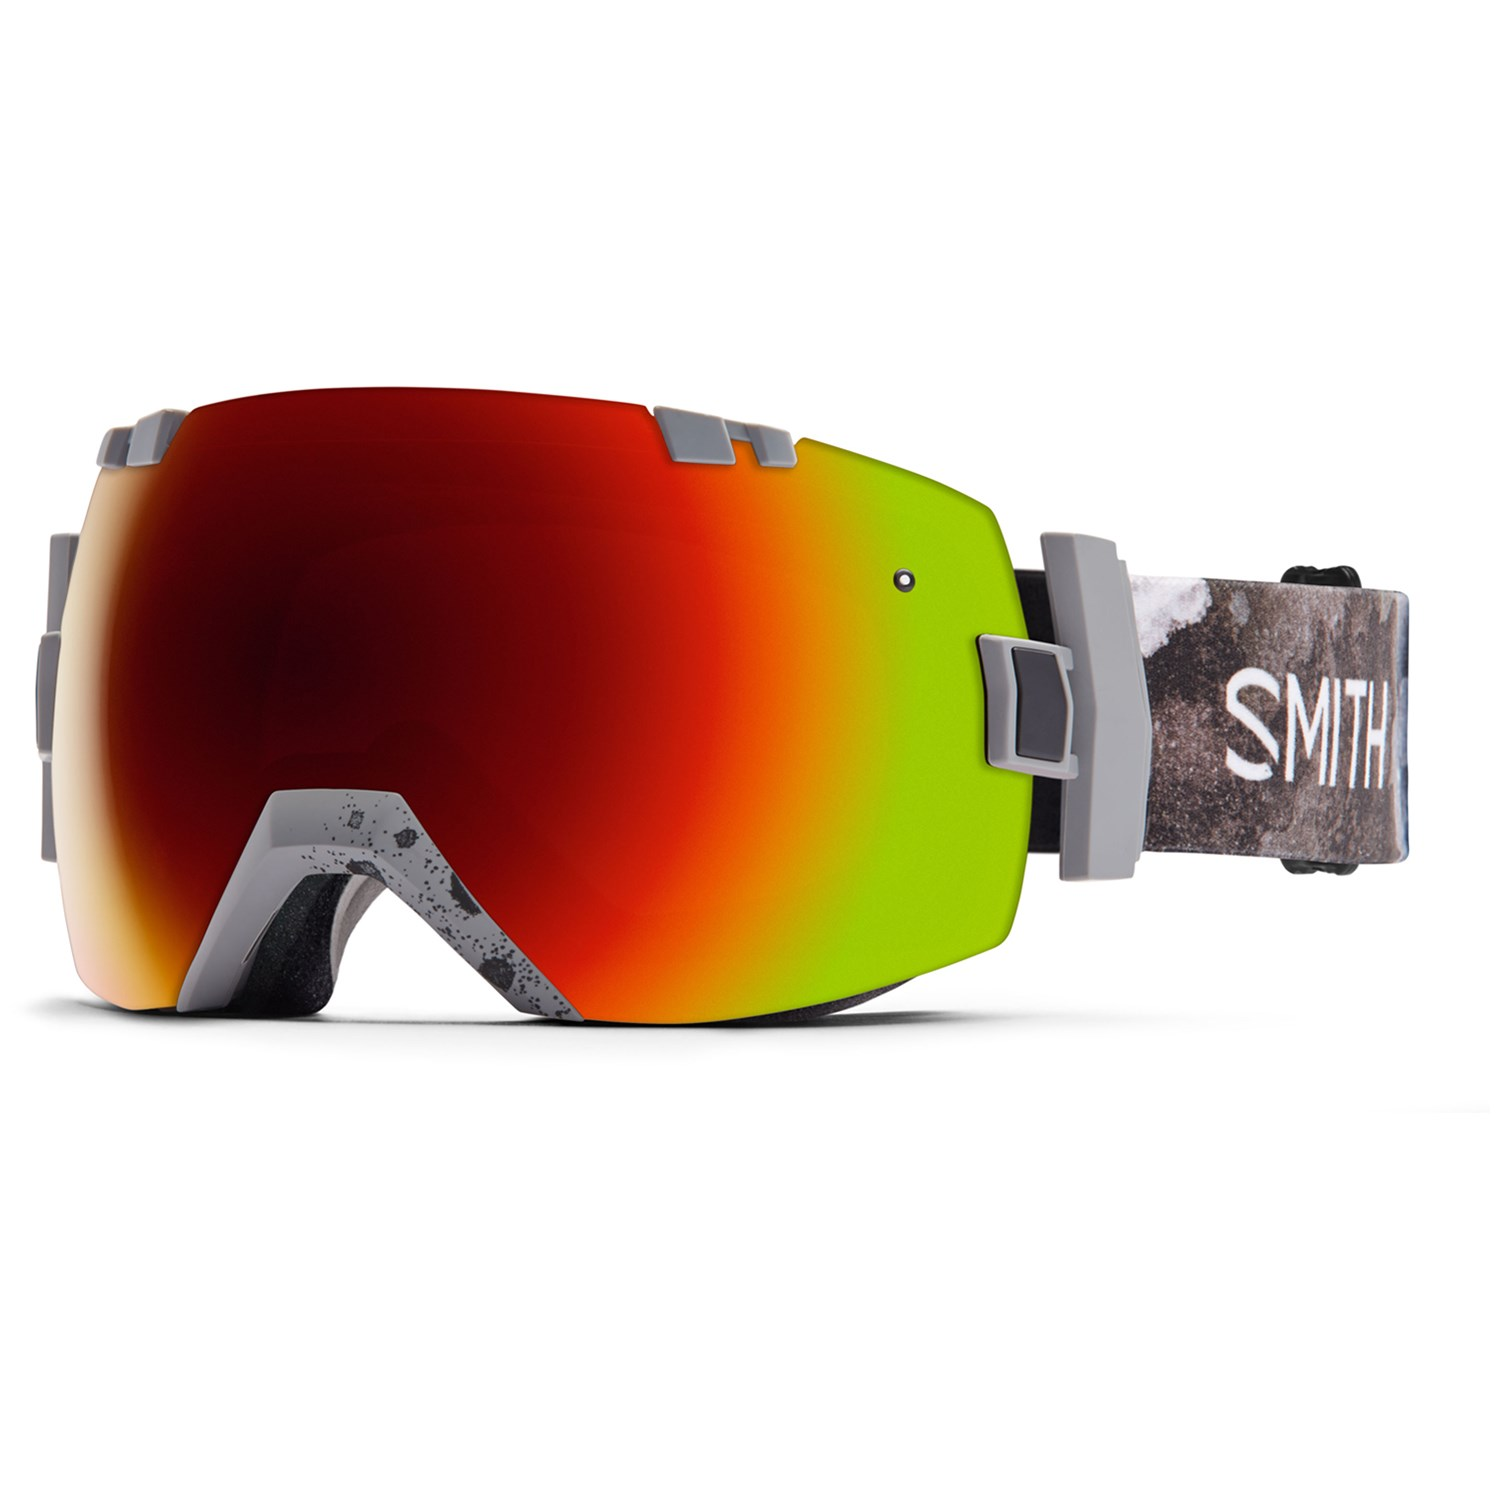 asian fit snow goggles  Smith I/OX Asian Fit Goggles